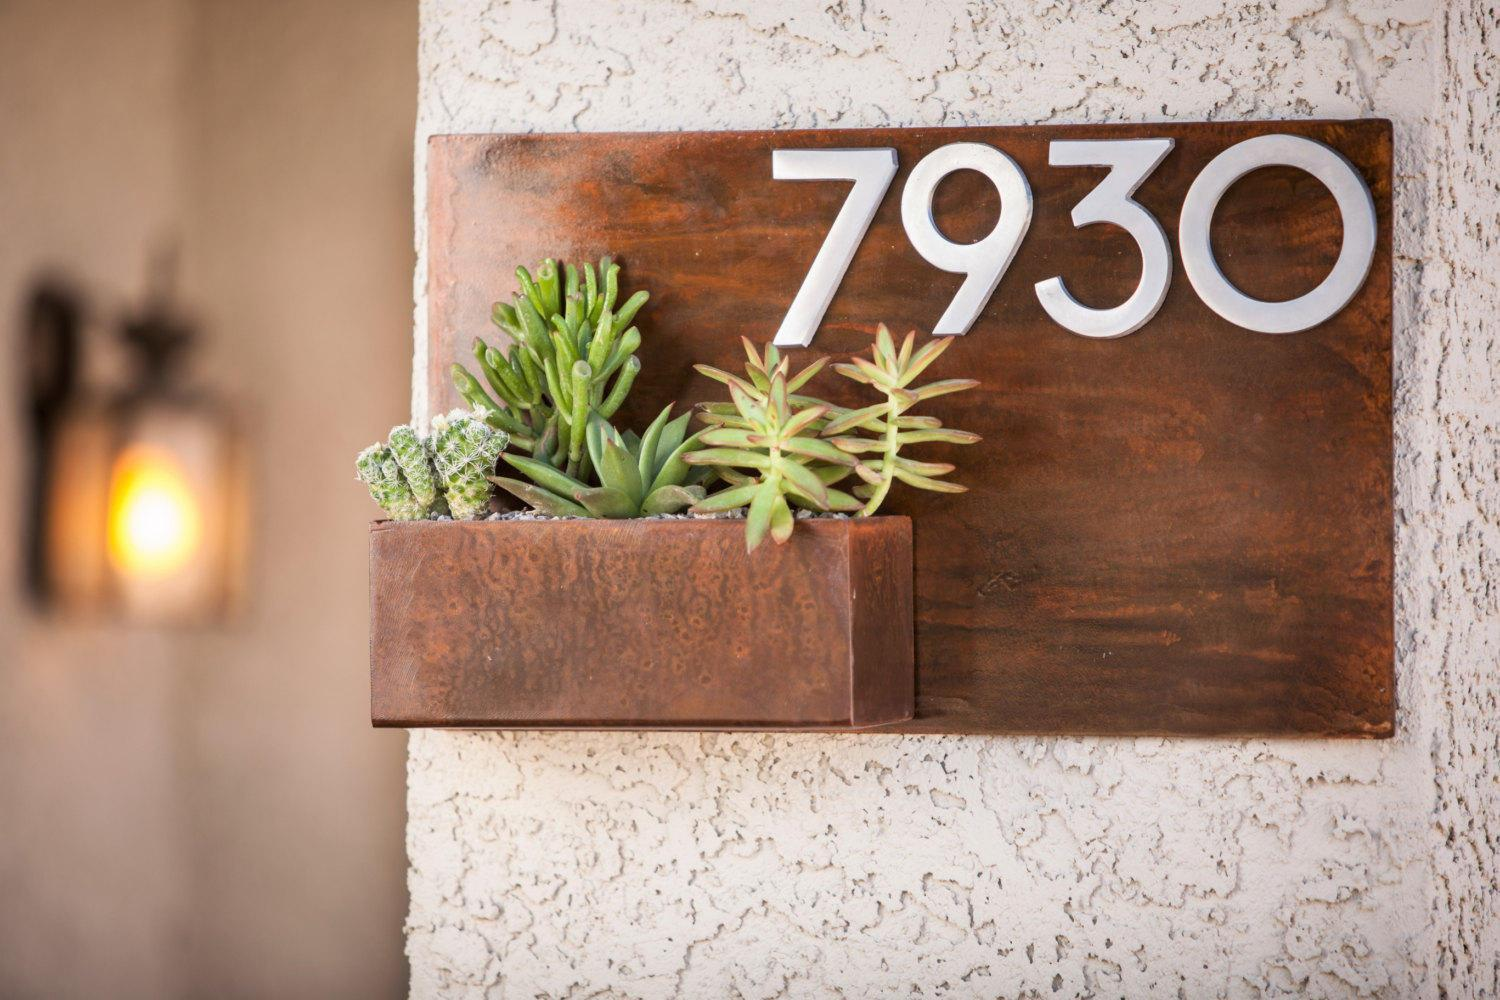 Modern Metal Address Planter Gives Curb Appeal | Looking Sharp Cactus